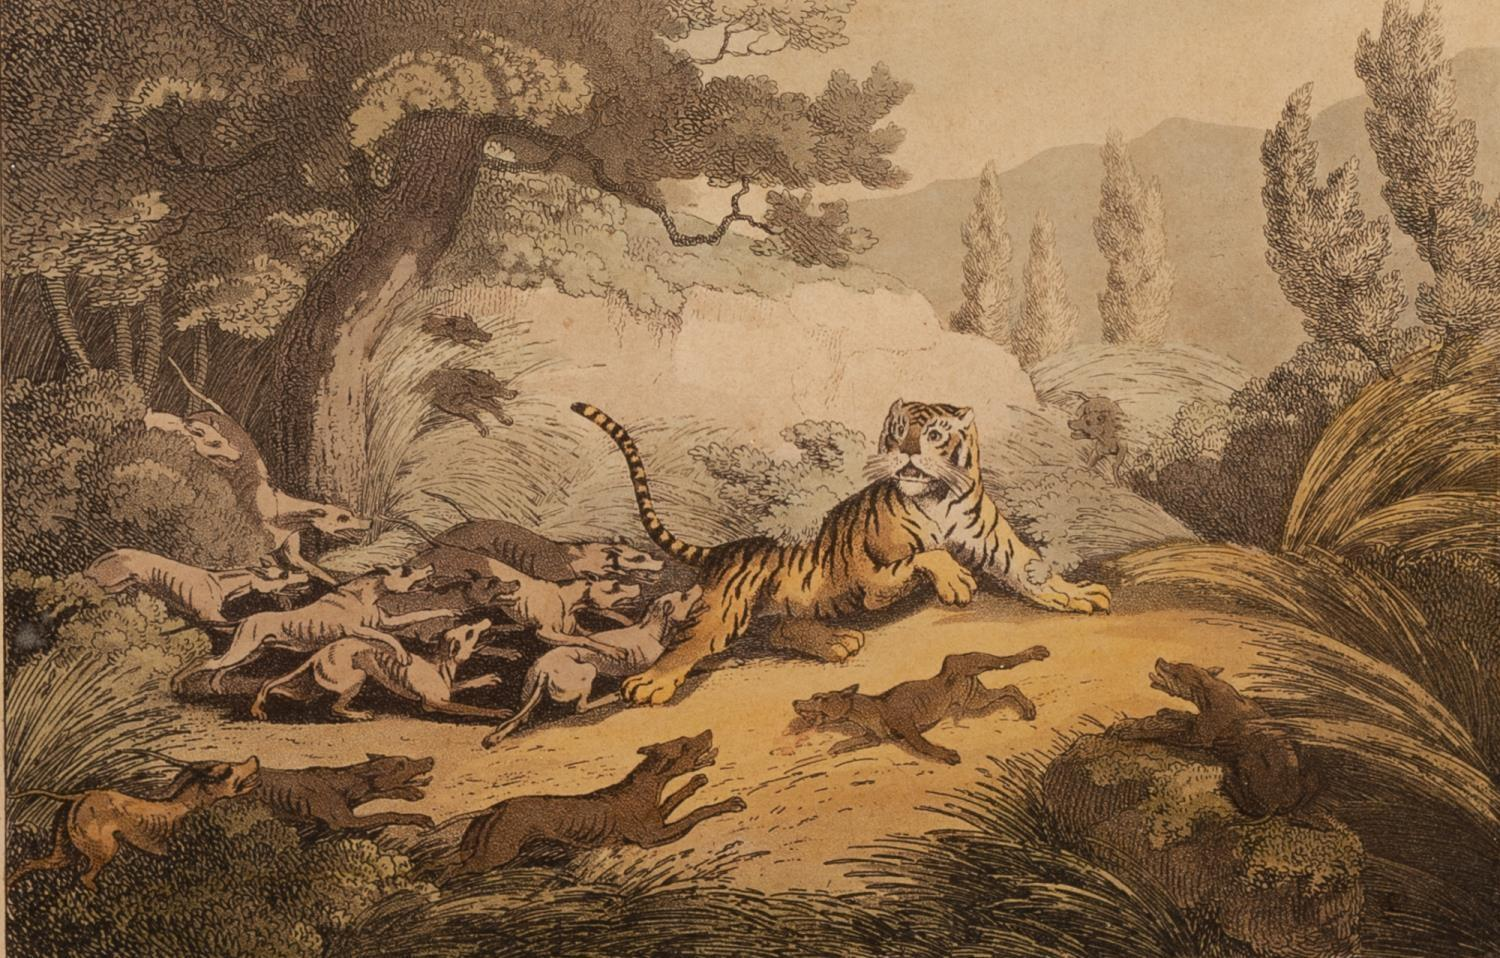 Lot 386 - AFTER WILLIAMSON & HOWITT BY CLARK PAIR OF TIGER HUNTING COLOURED BOOKPLATE ENGRAVINGS Numbered 21